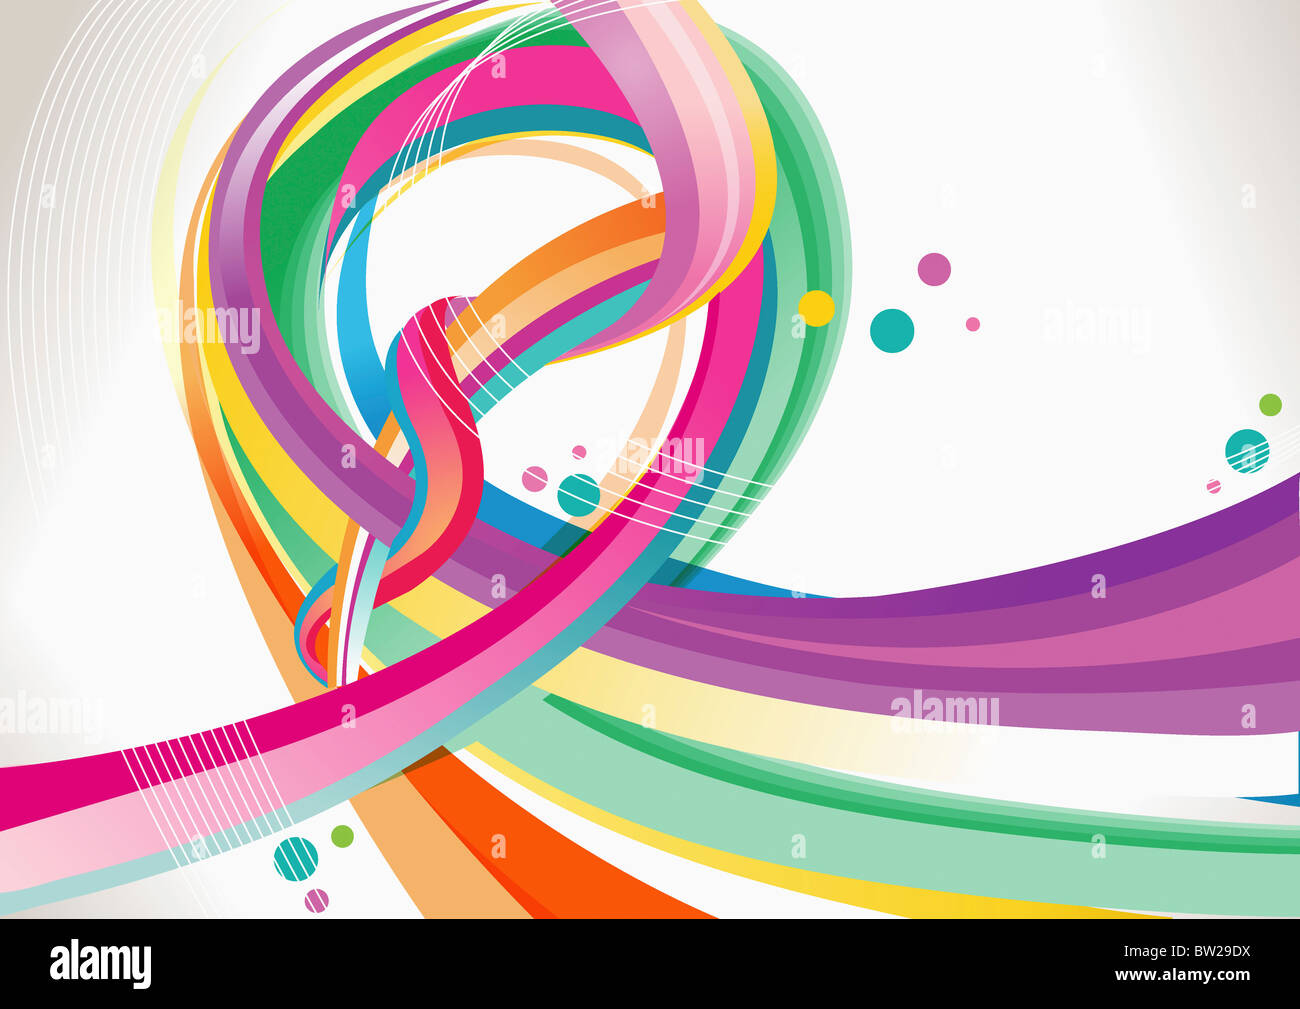 colorful textured pattern - Stock Image